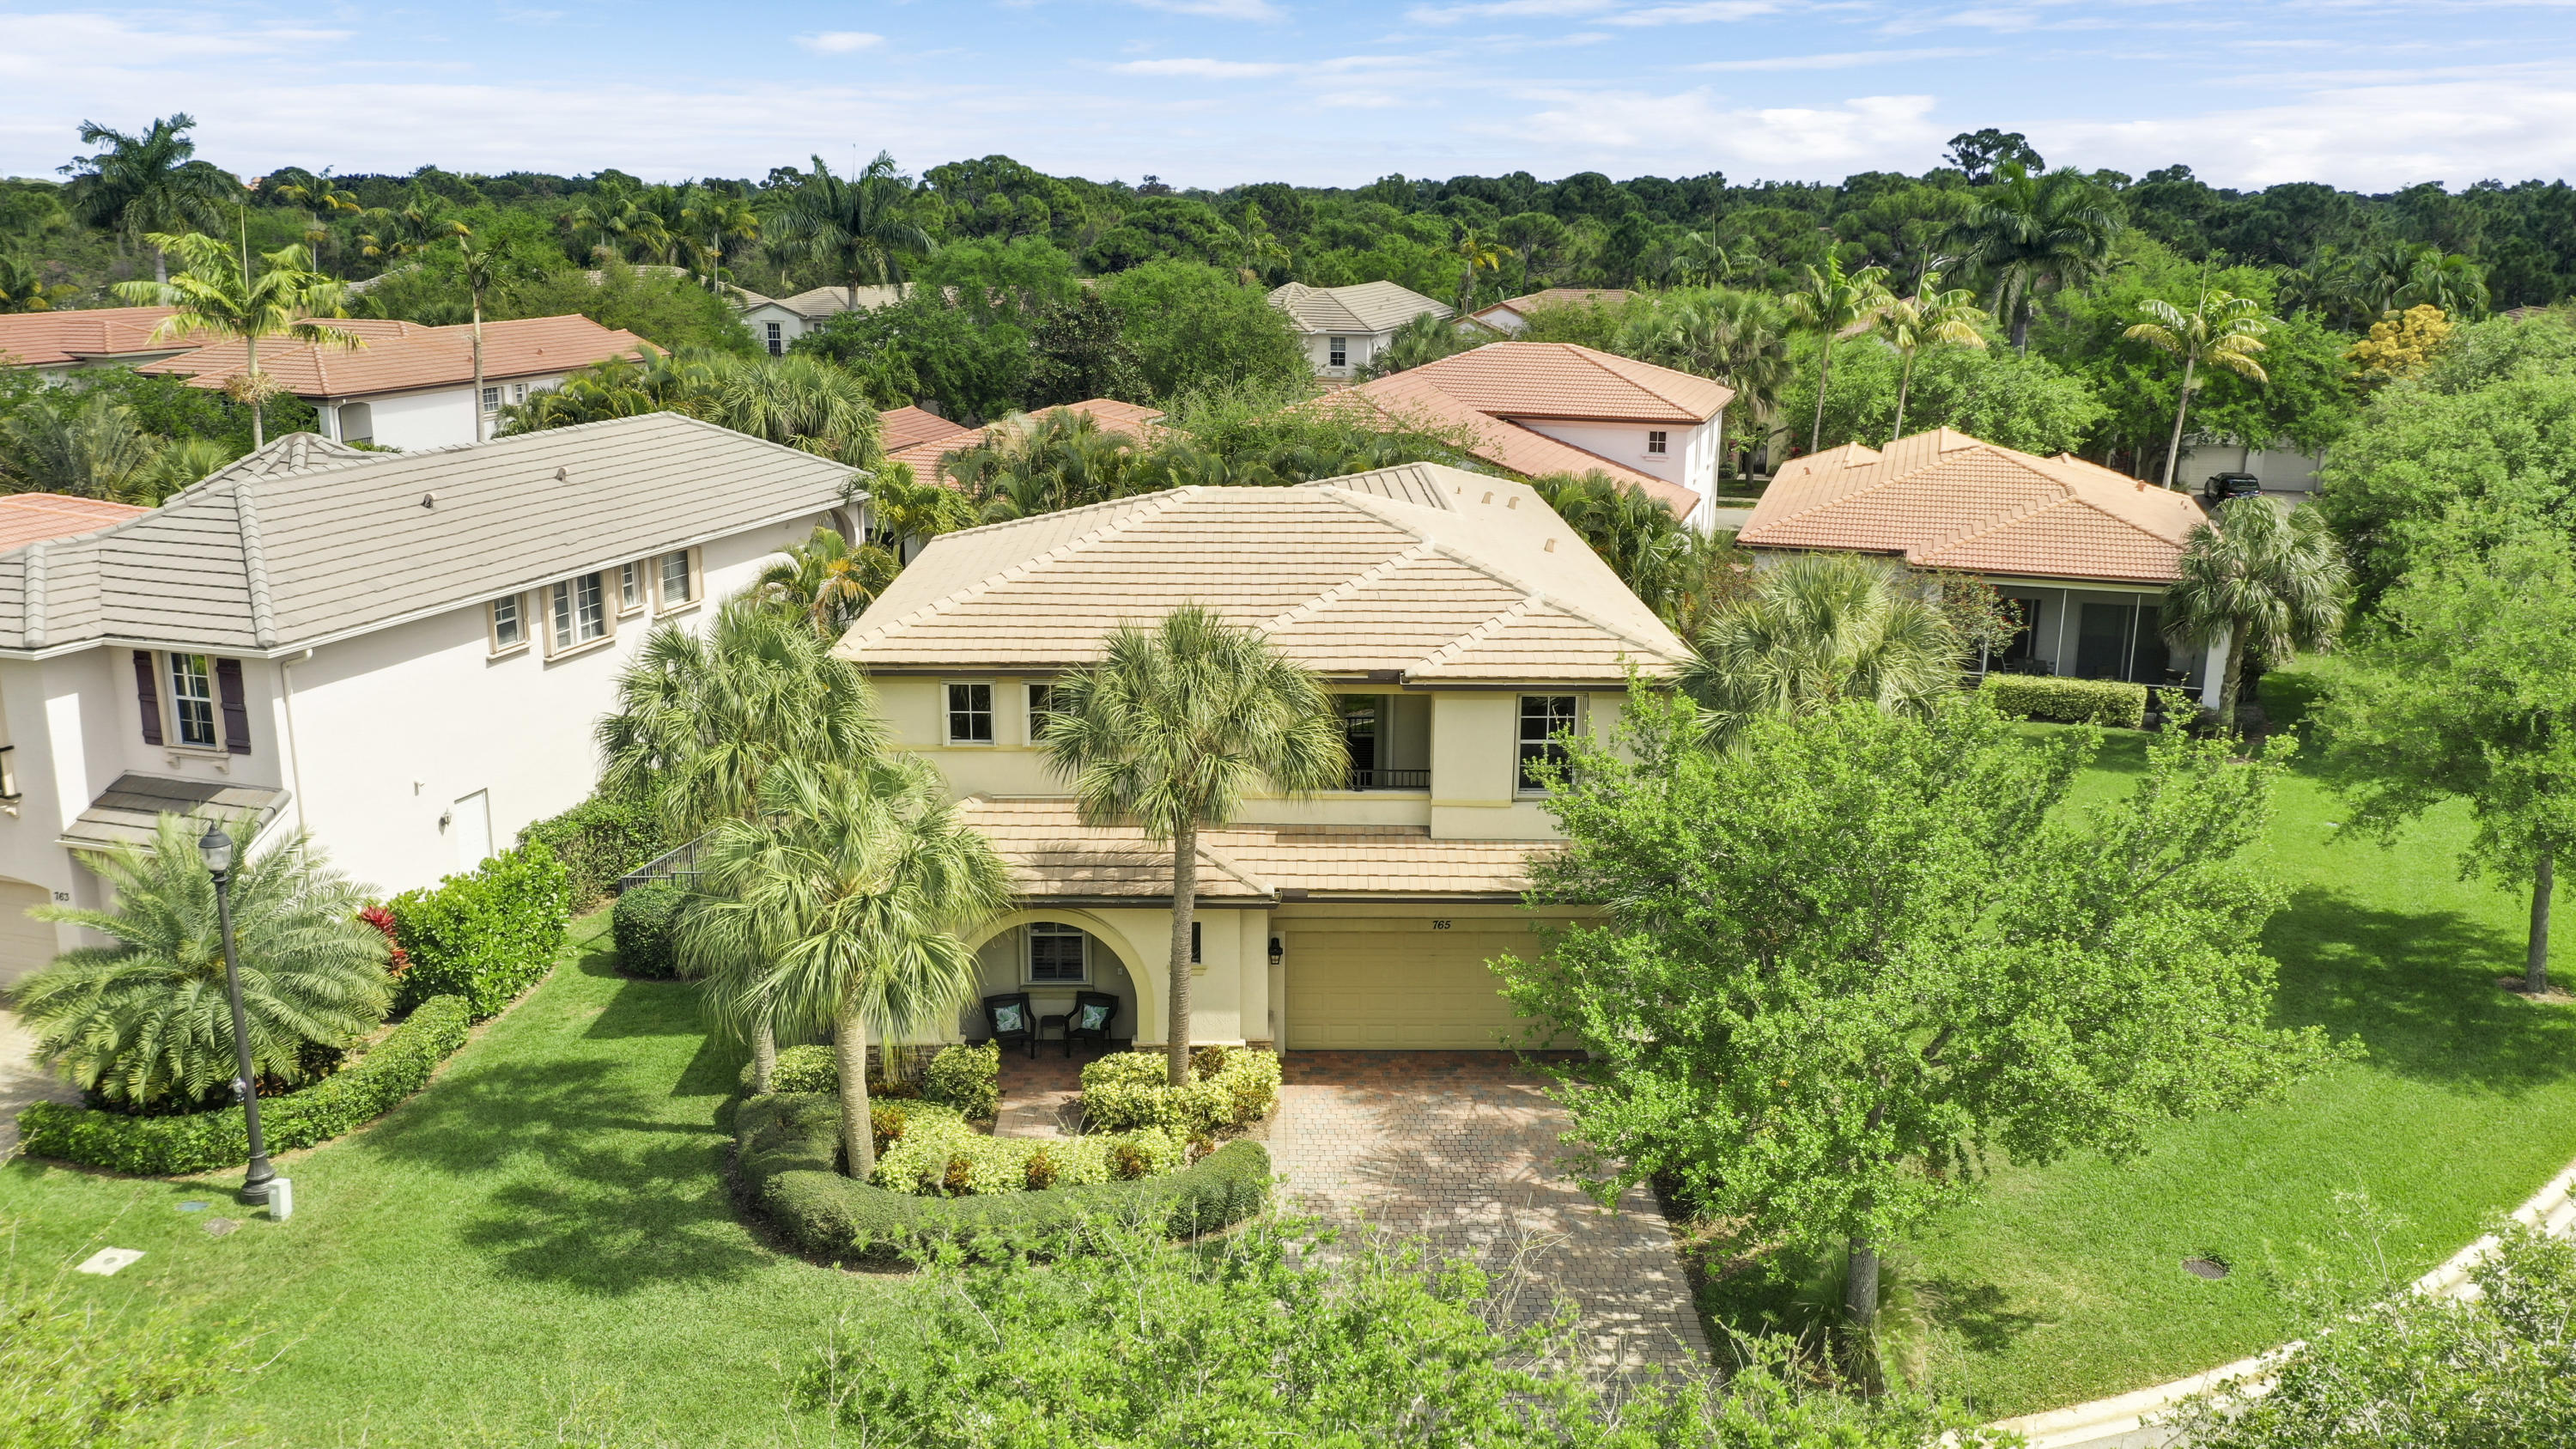 Home for sale in evergrene pcd 2 Palm Beach Gardens Florida